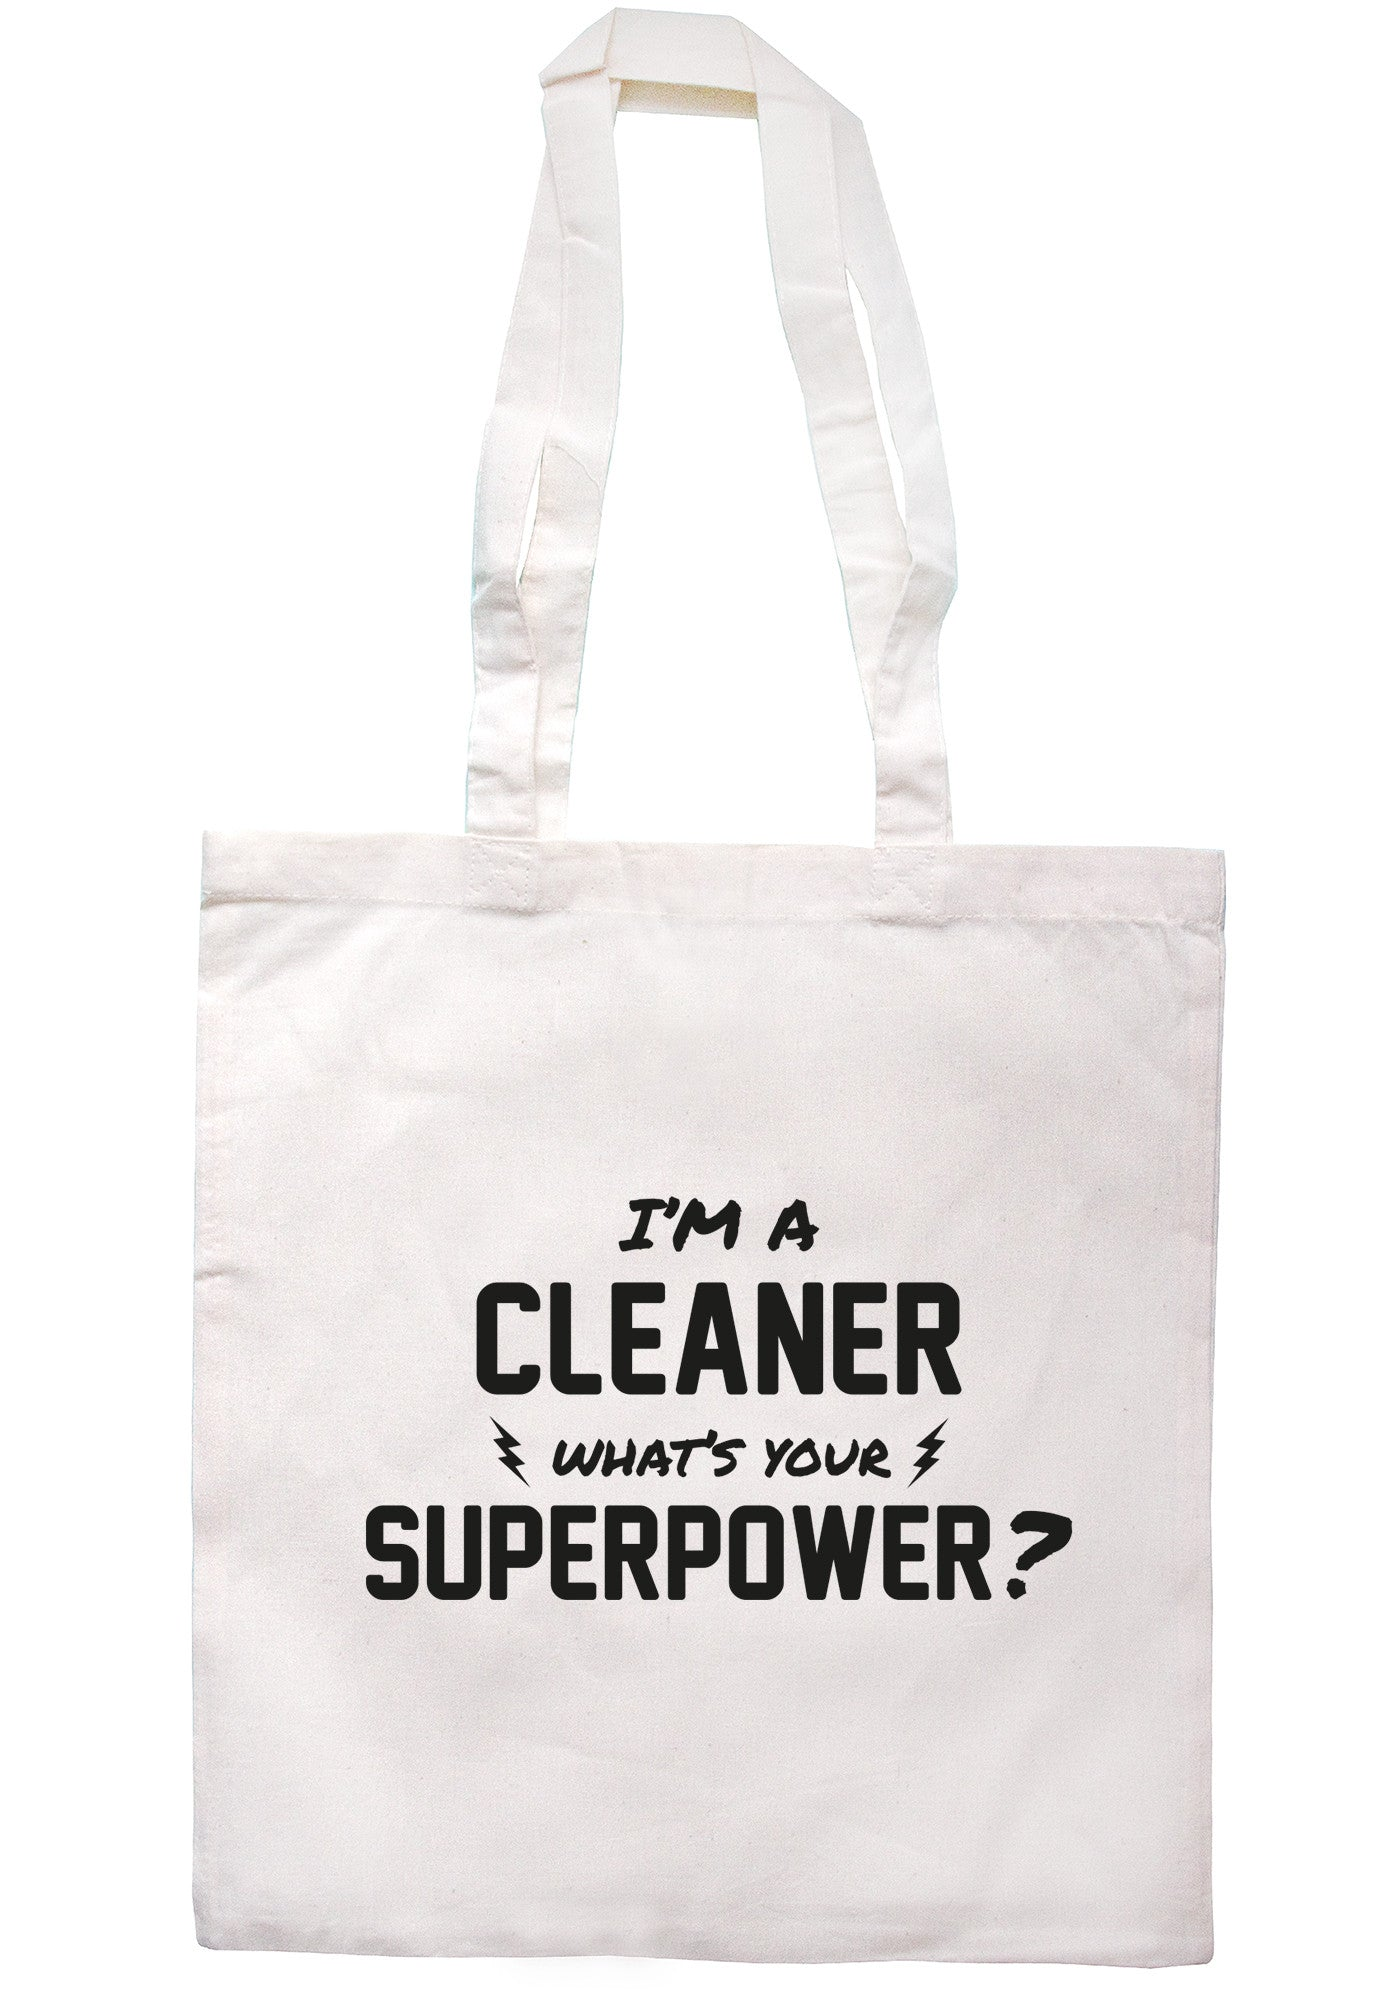 I'm A Cleaner What's Your Superpower? Tote Bag TB0511 - Illustrated Identity Ltd.